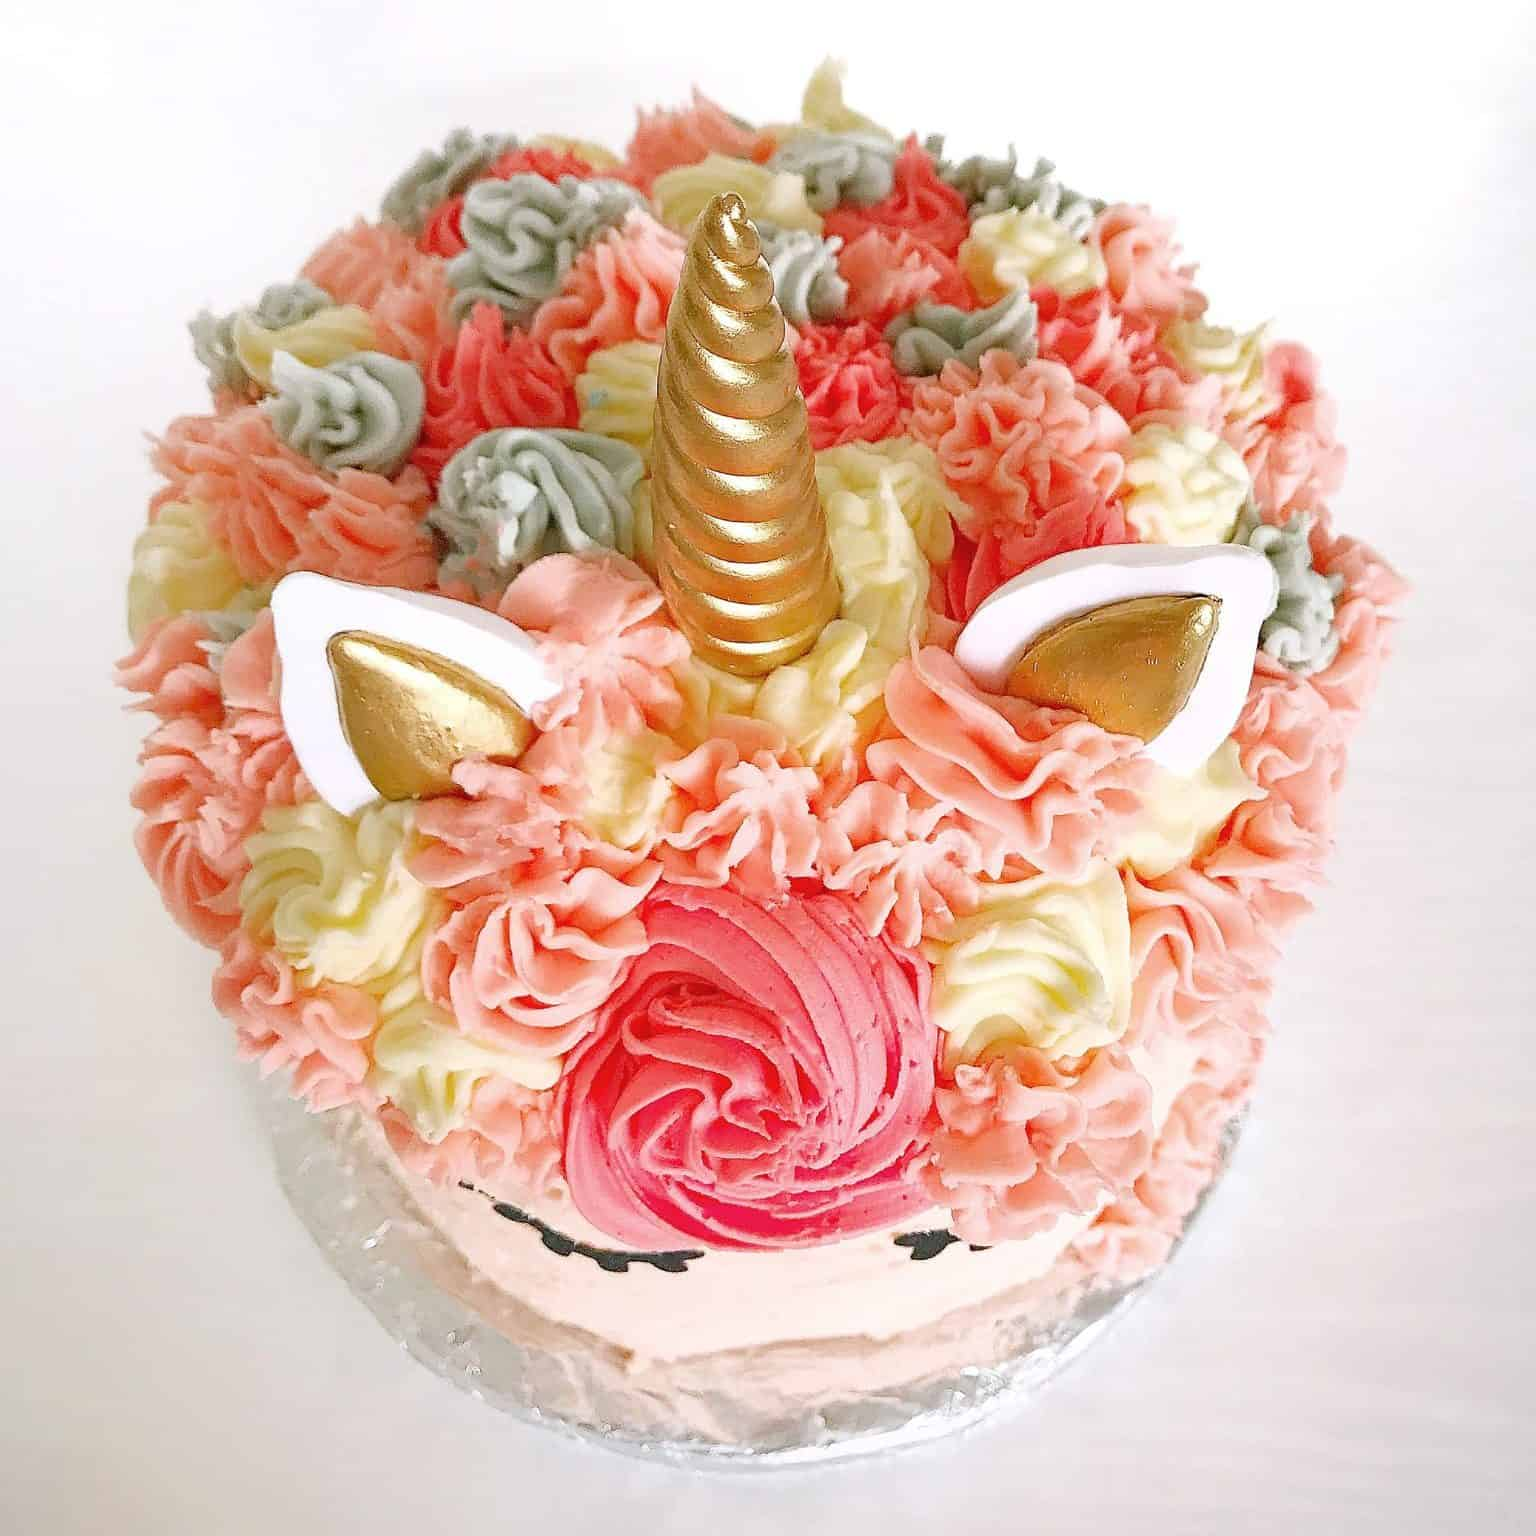 Top of a pink rainbow unicorn cake